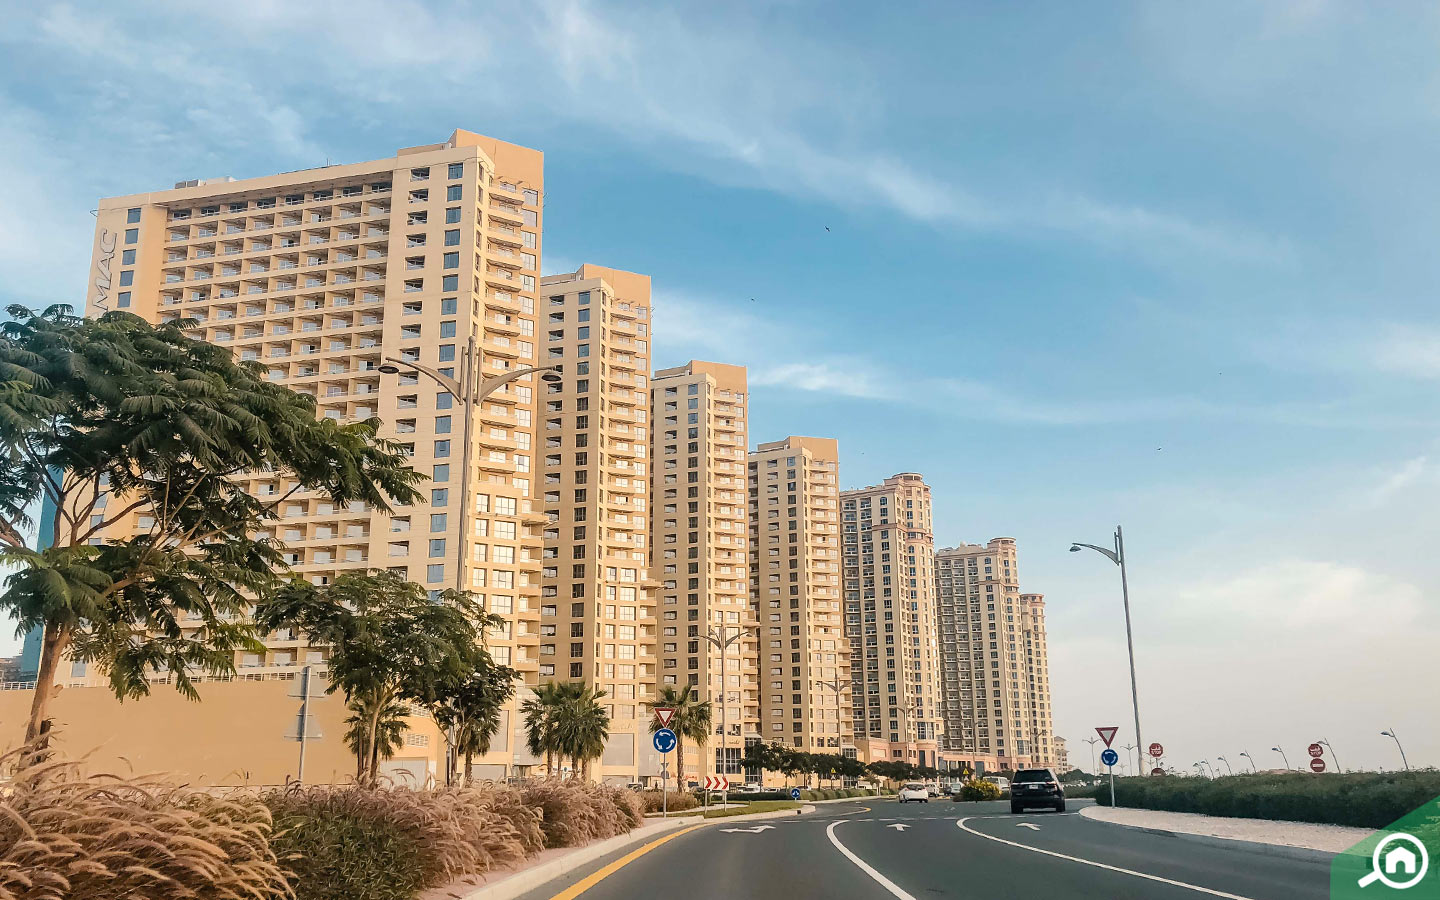 Dubai Production City apartments for sale, one of the Dubai Expo 2020 projects